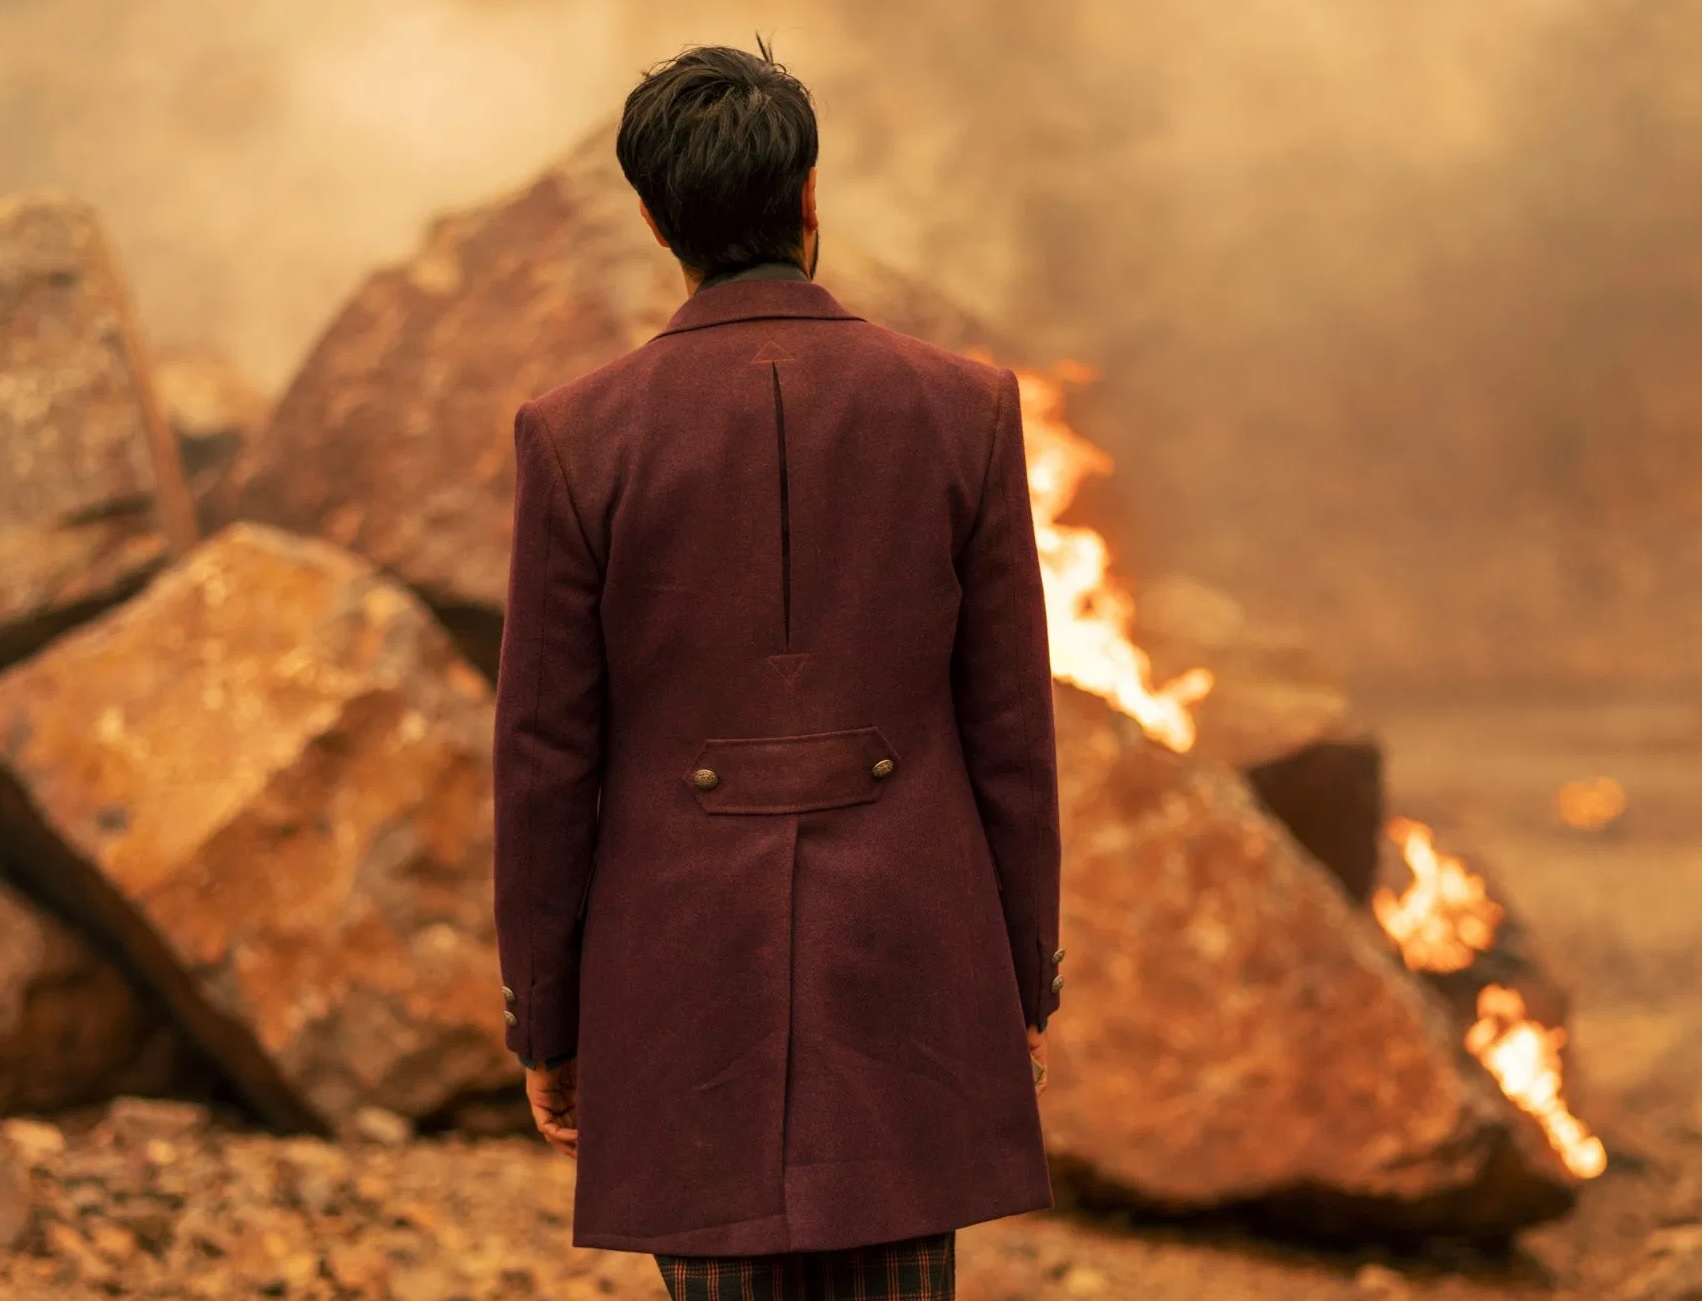 Here's What the Doctor Who Companion Thought of The Timeless Children: Part Two